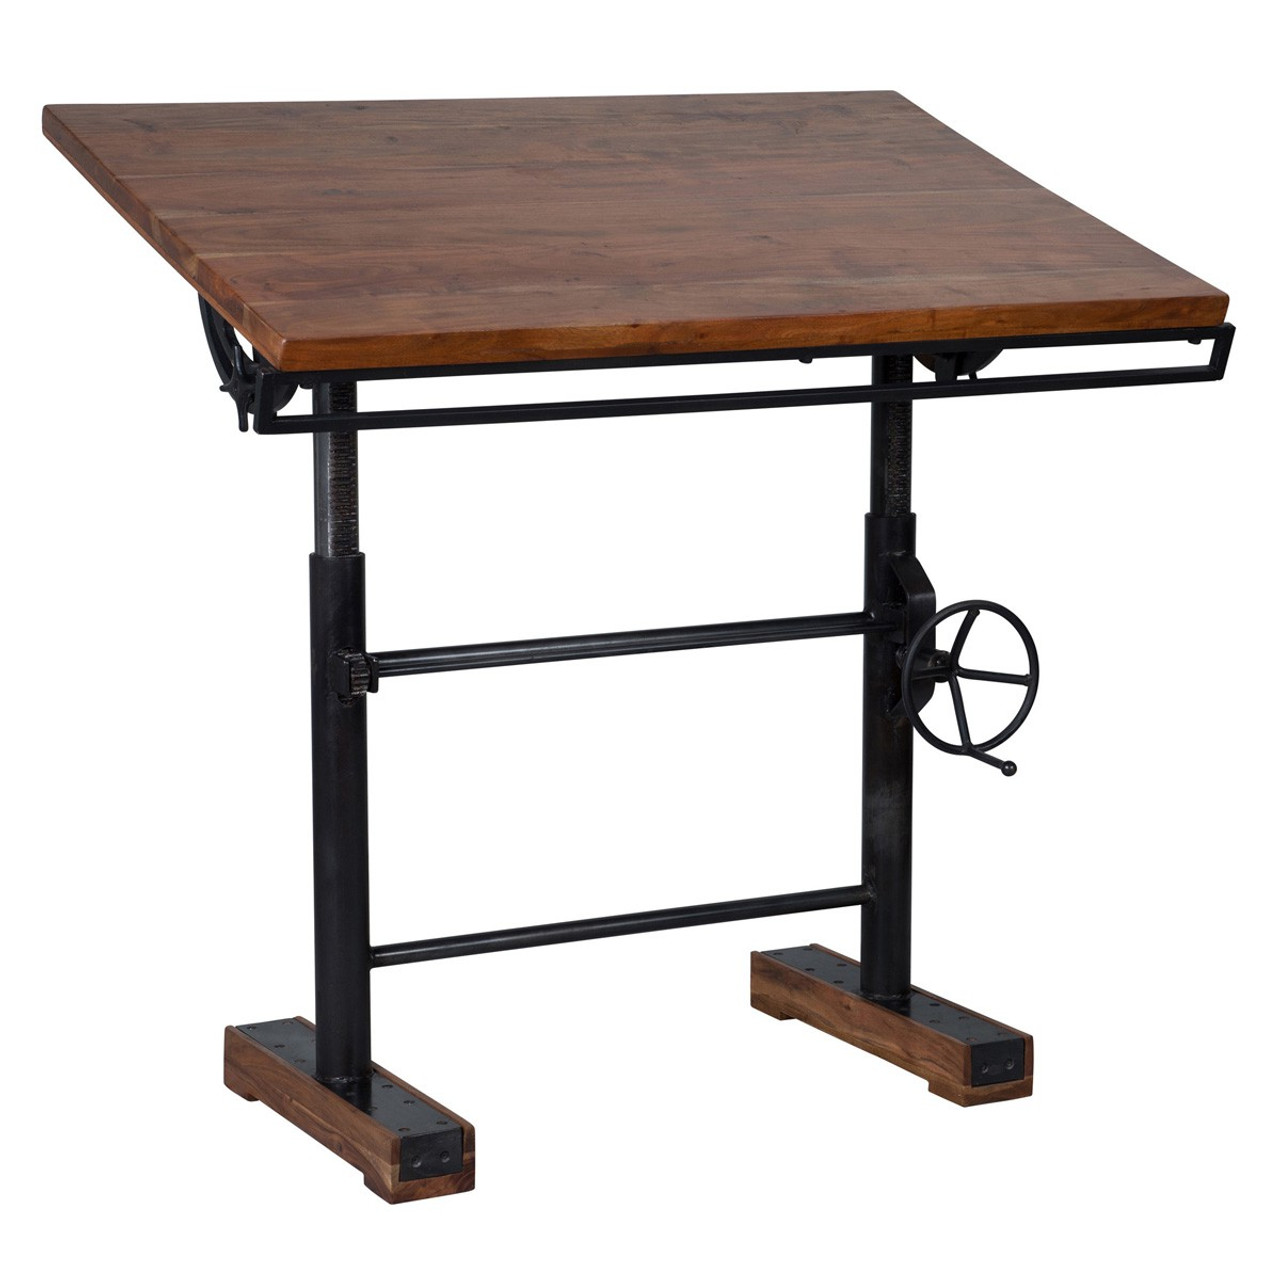 Adjustable Height Drafting Table Steampunk Industrial Crank Adjustable Standing Desk